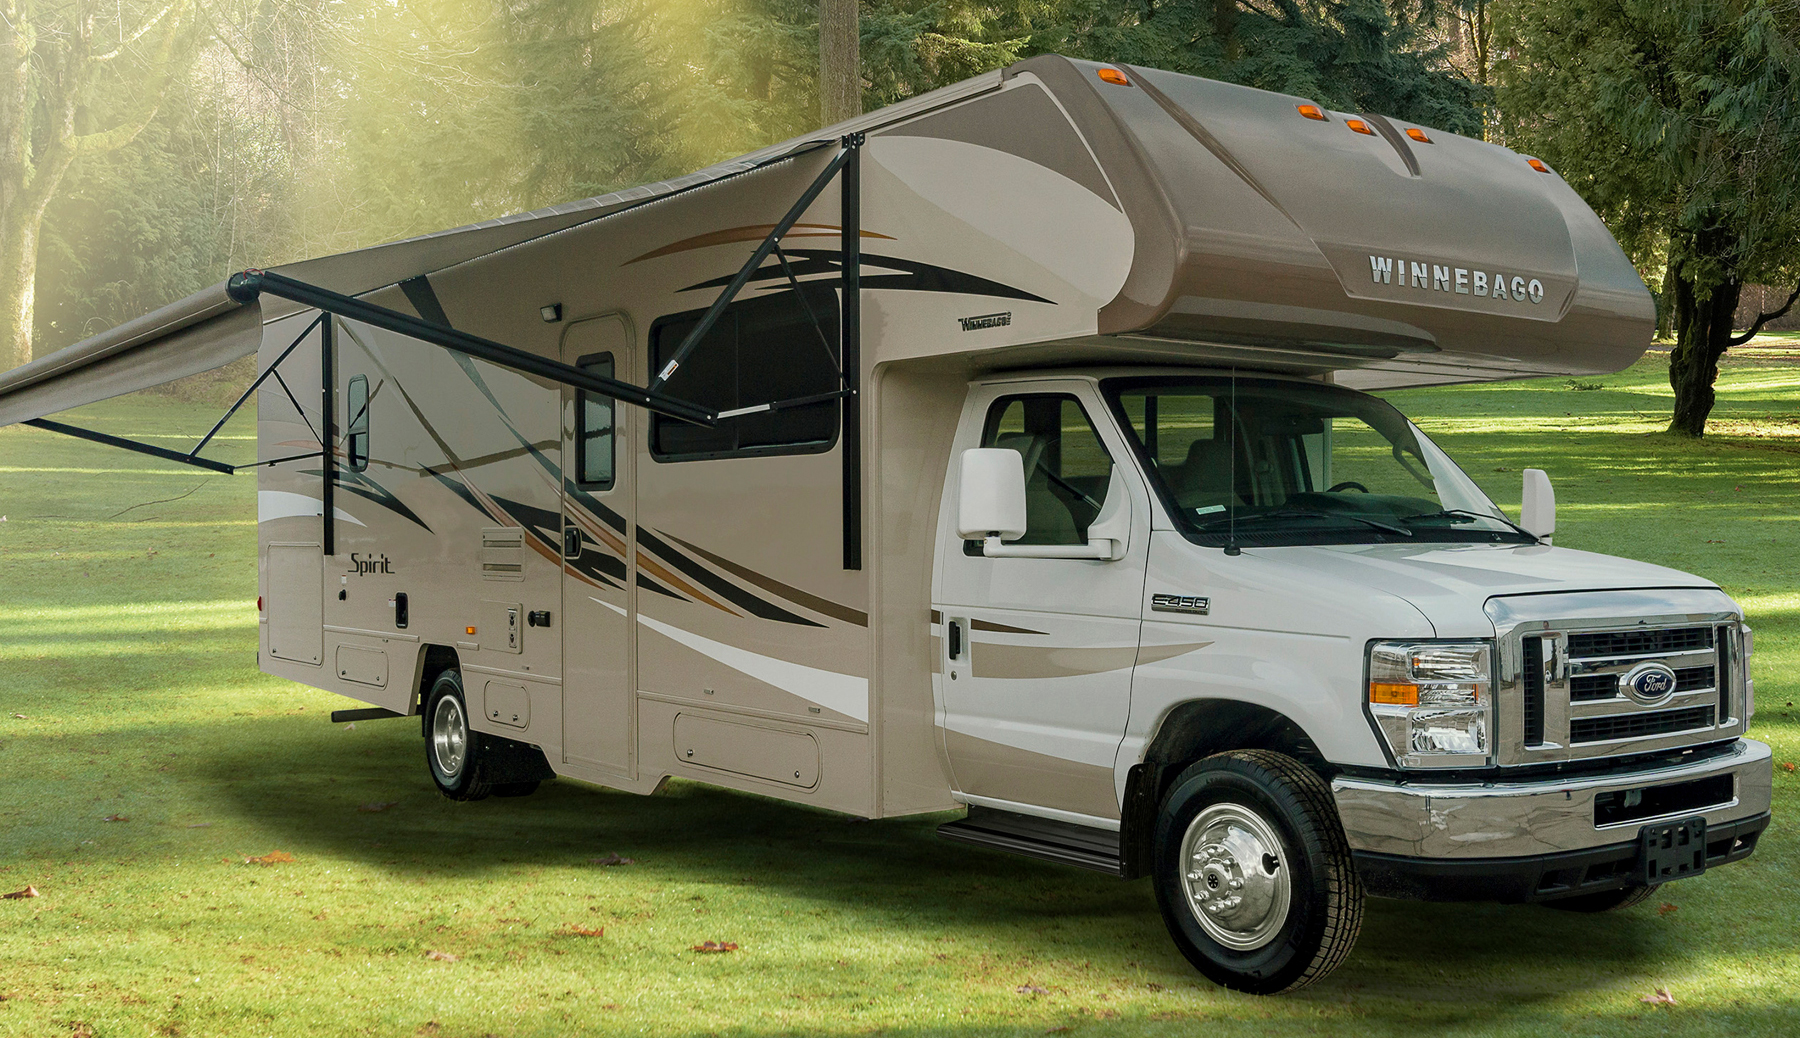 The Spirit & Spirit Silver by Winnebago